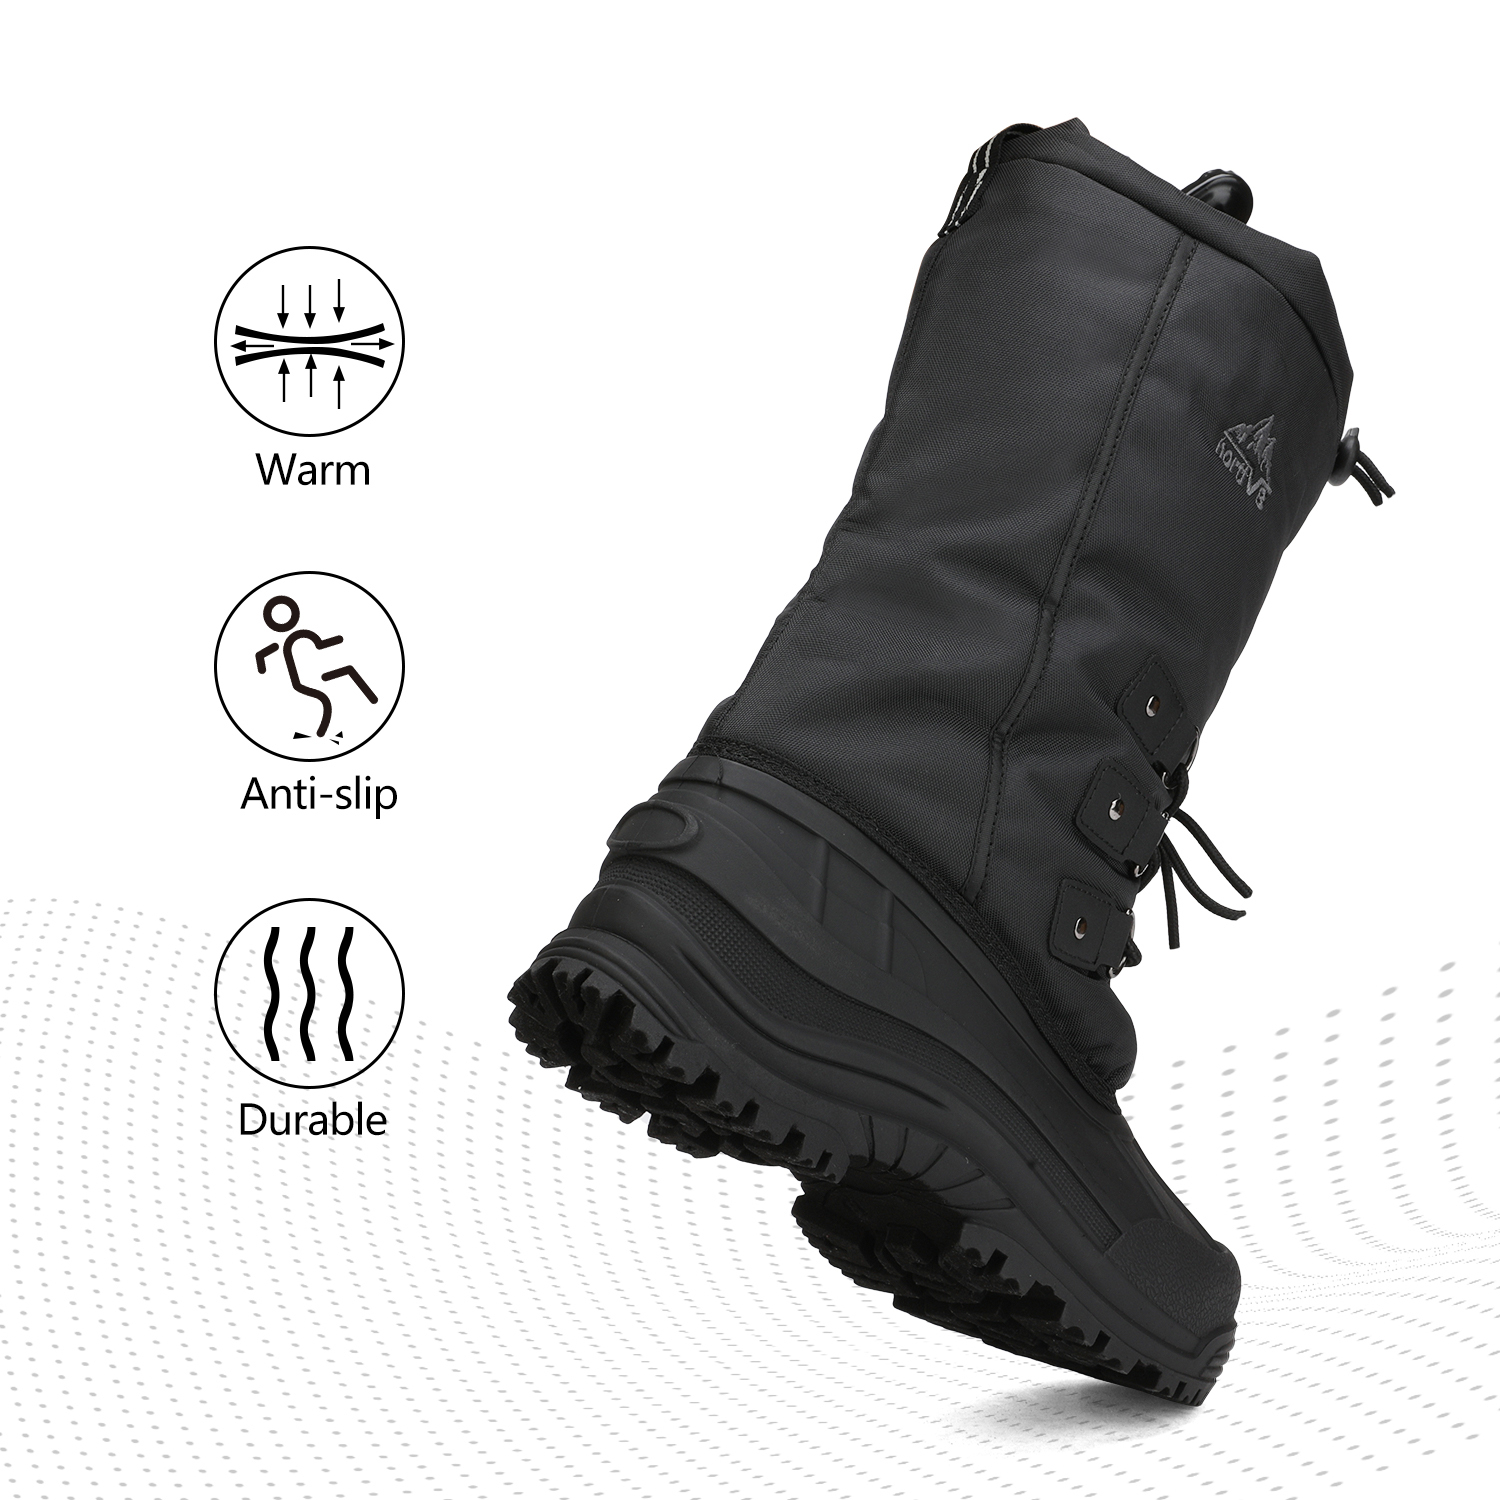 NORTIV-8-Men-039-s-Winter-Snow-Boots-Waterproof-Warm-Thermolite-Outdoor-Hiking-Boots thumbnail 21